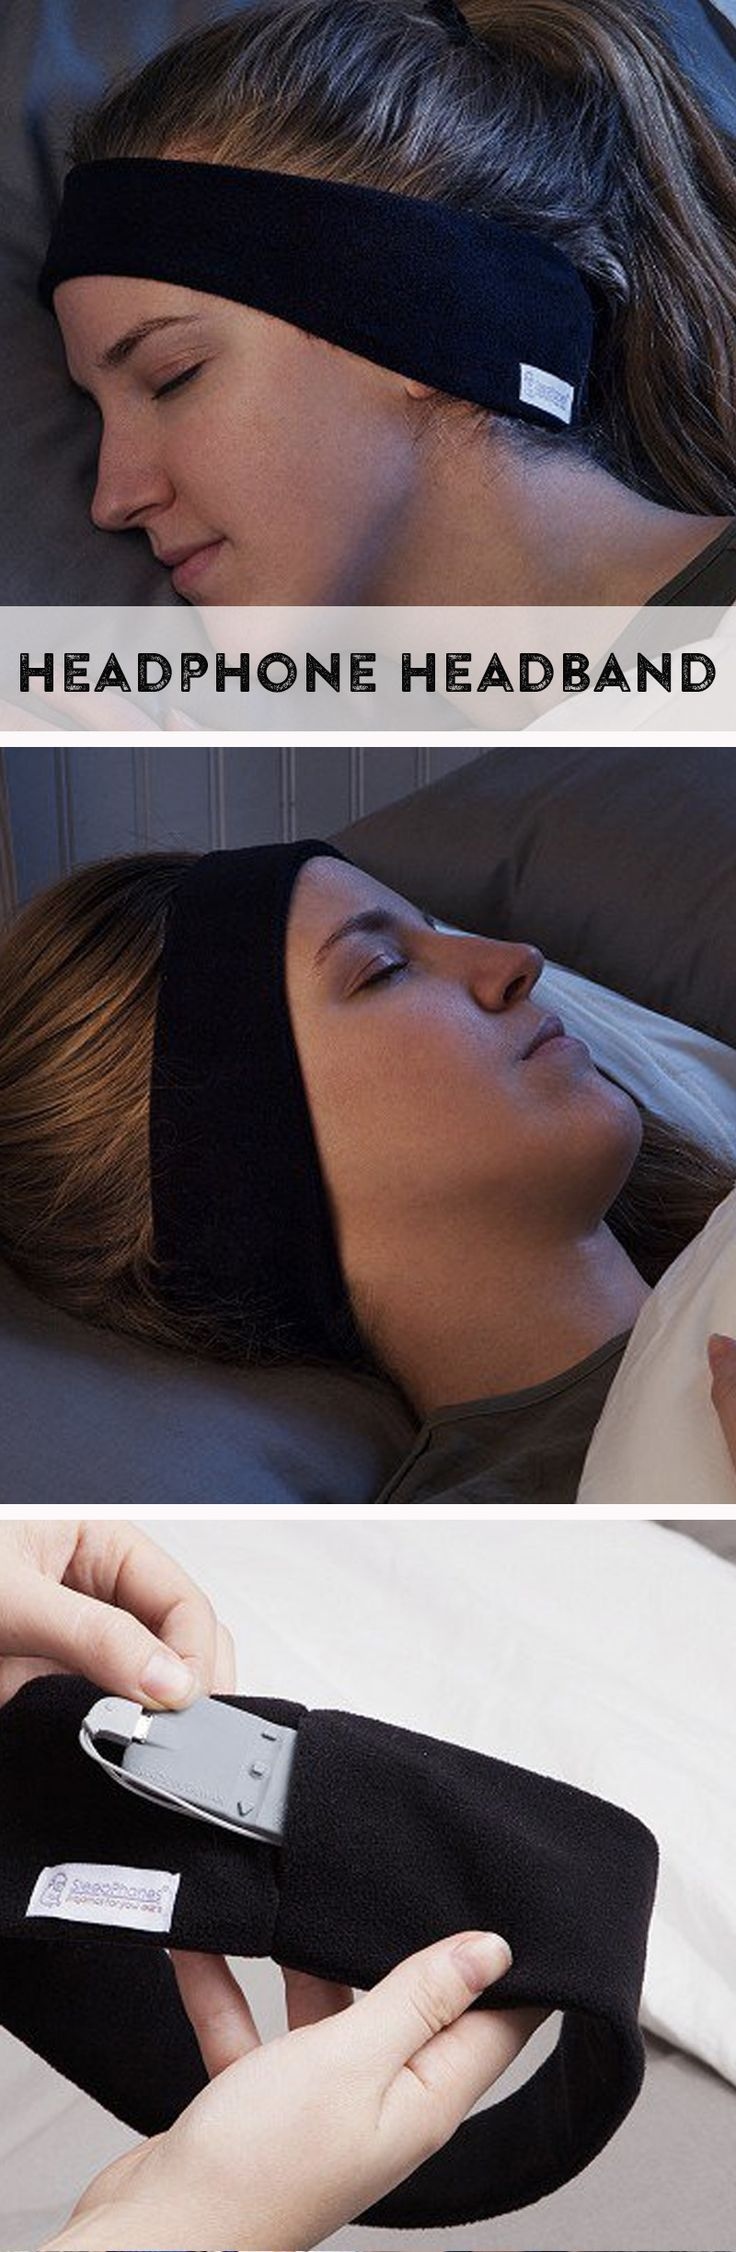 Lull yourself to sleep or create an ultra-comfortable listening experience anywhere with soft headband headphones. d'autres gadgets ici : http://amzn.to/2kWxdPn